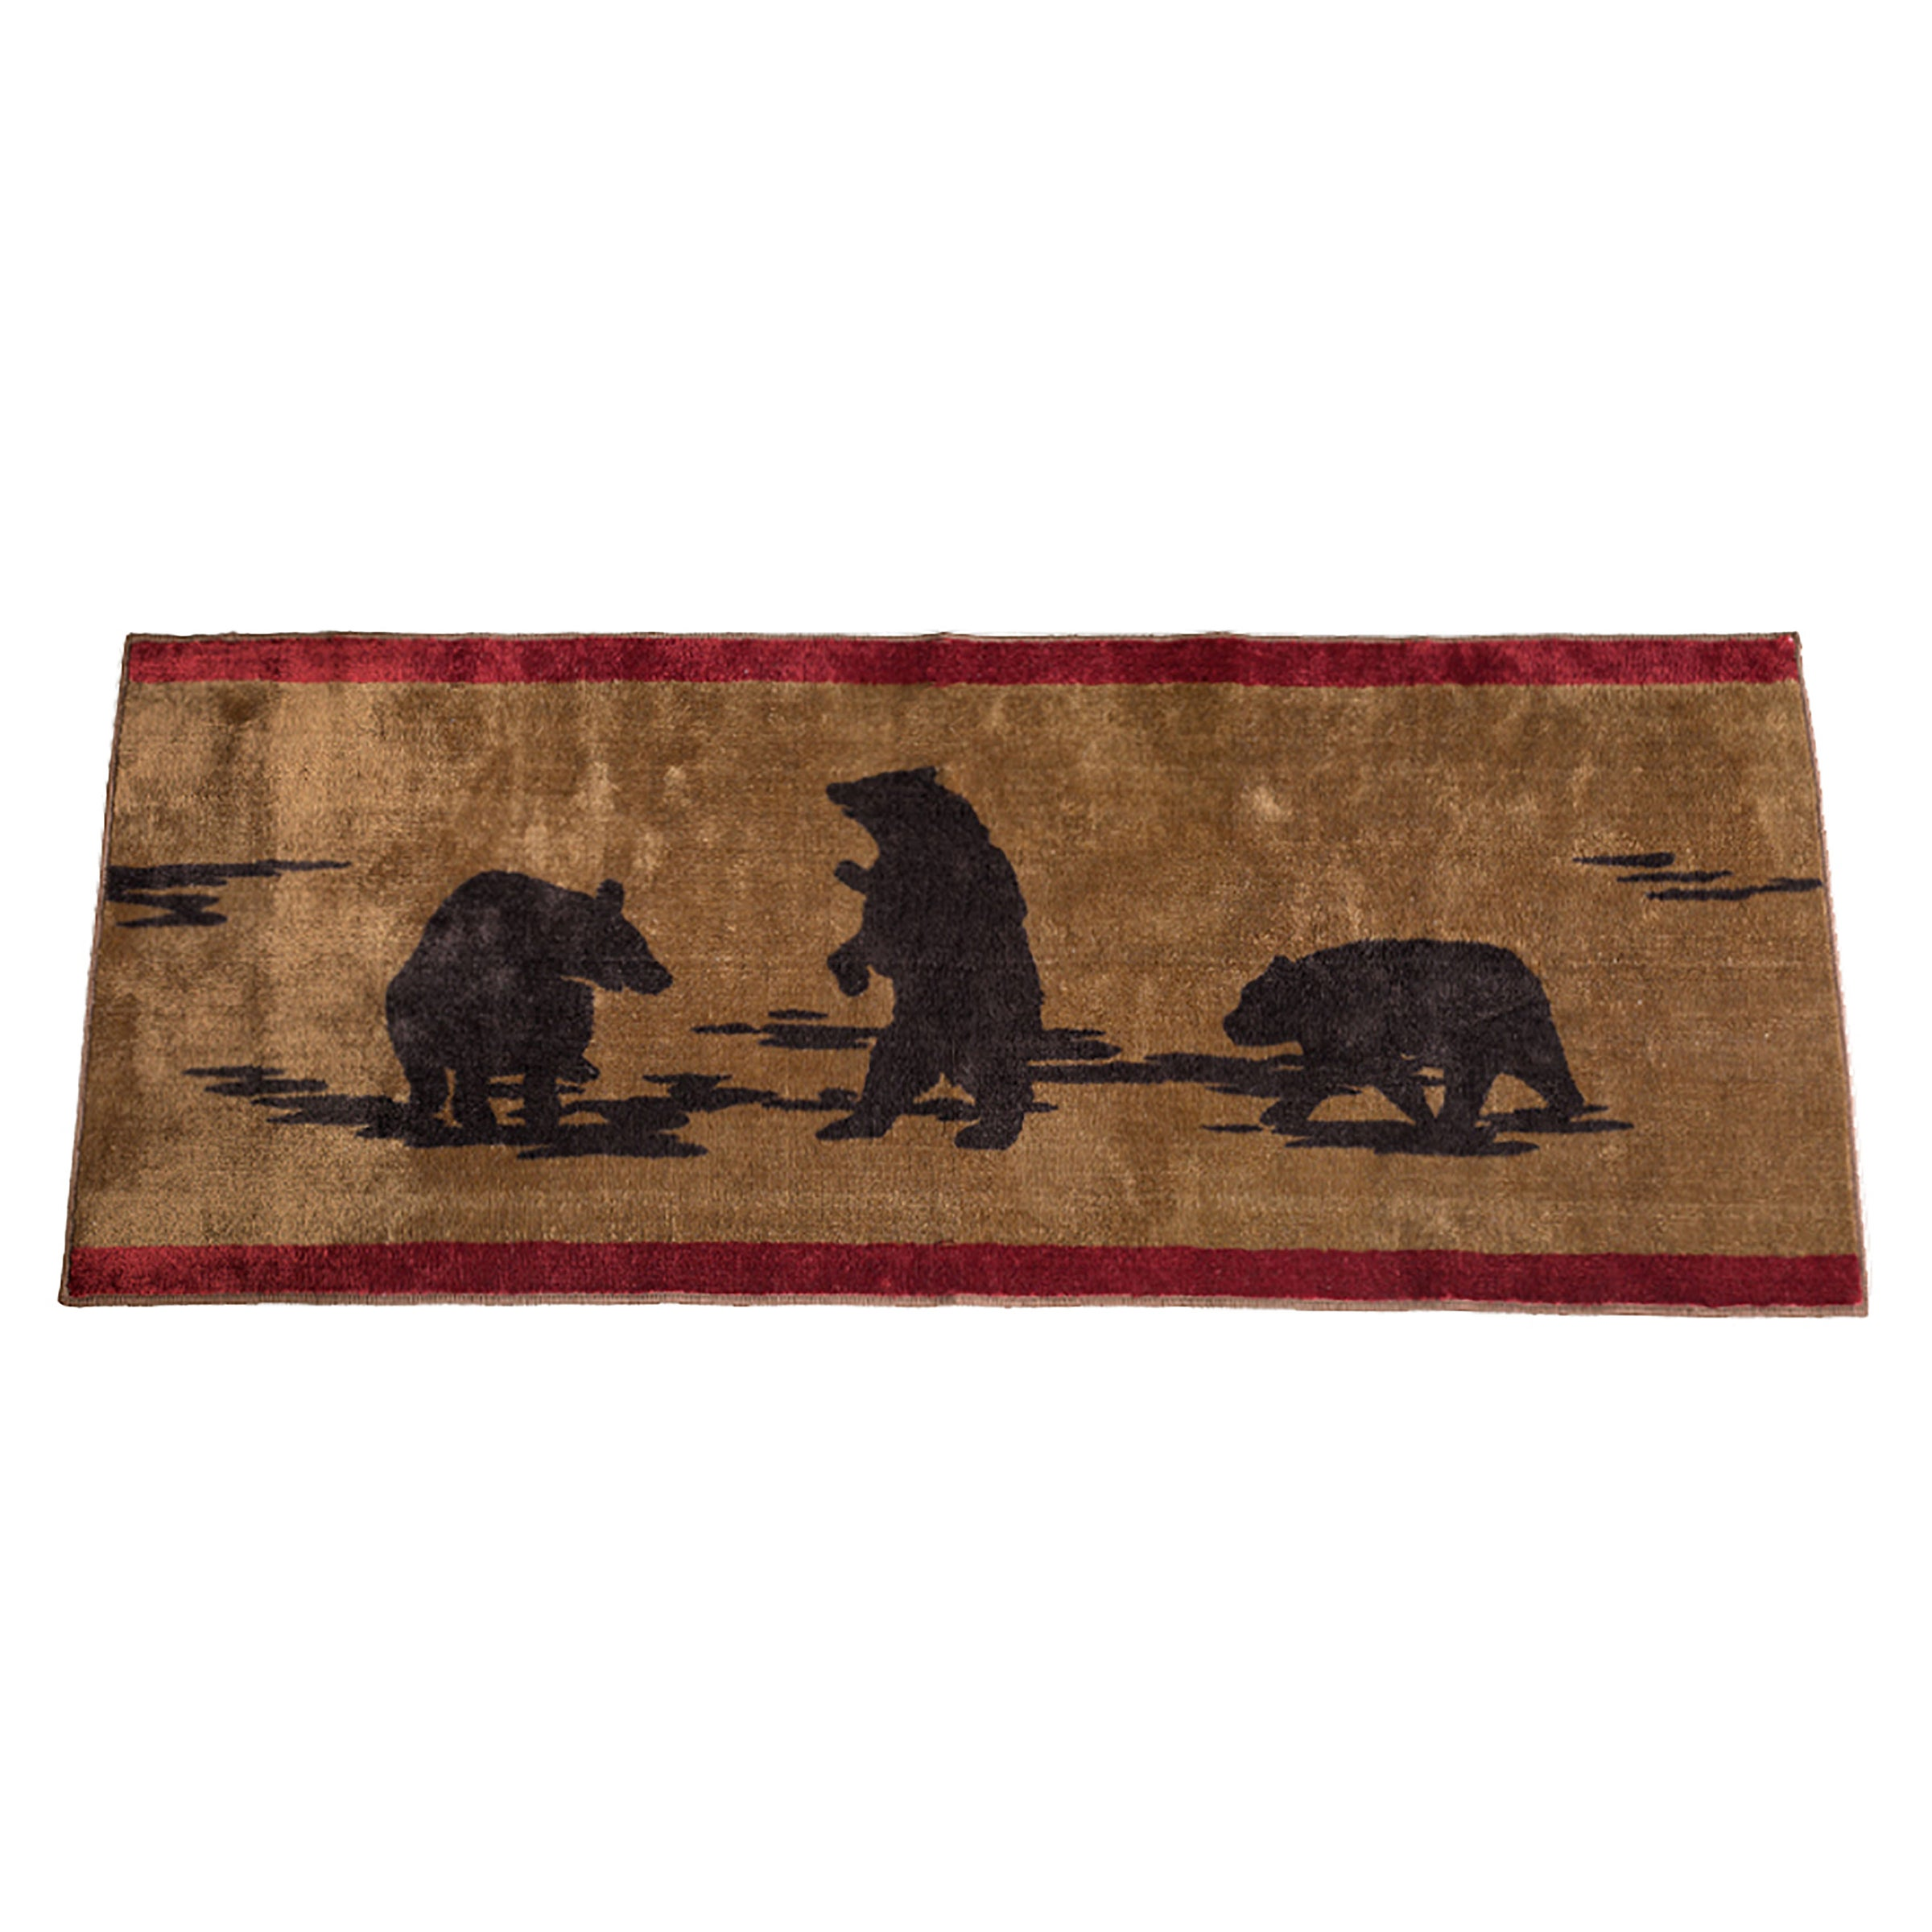 24x60 bath rugs | home & garden | compare prices at nextag